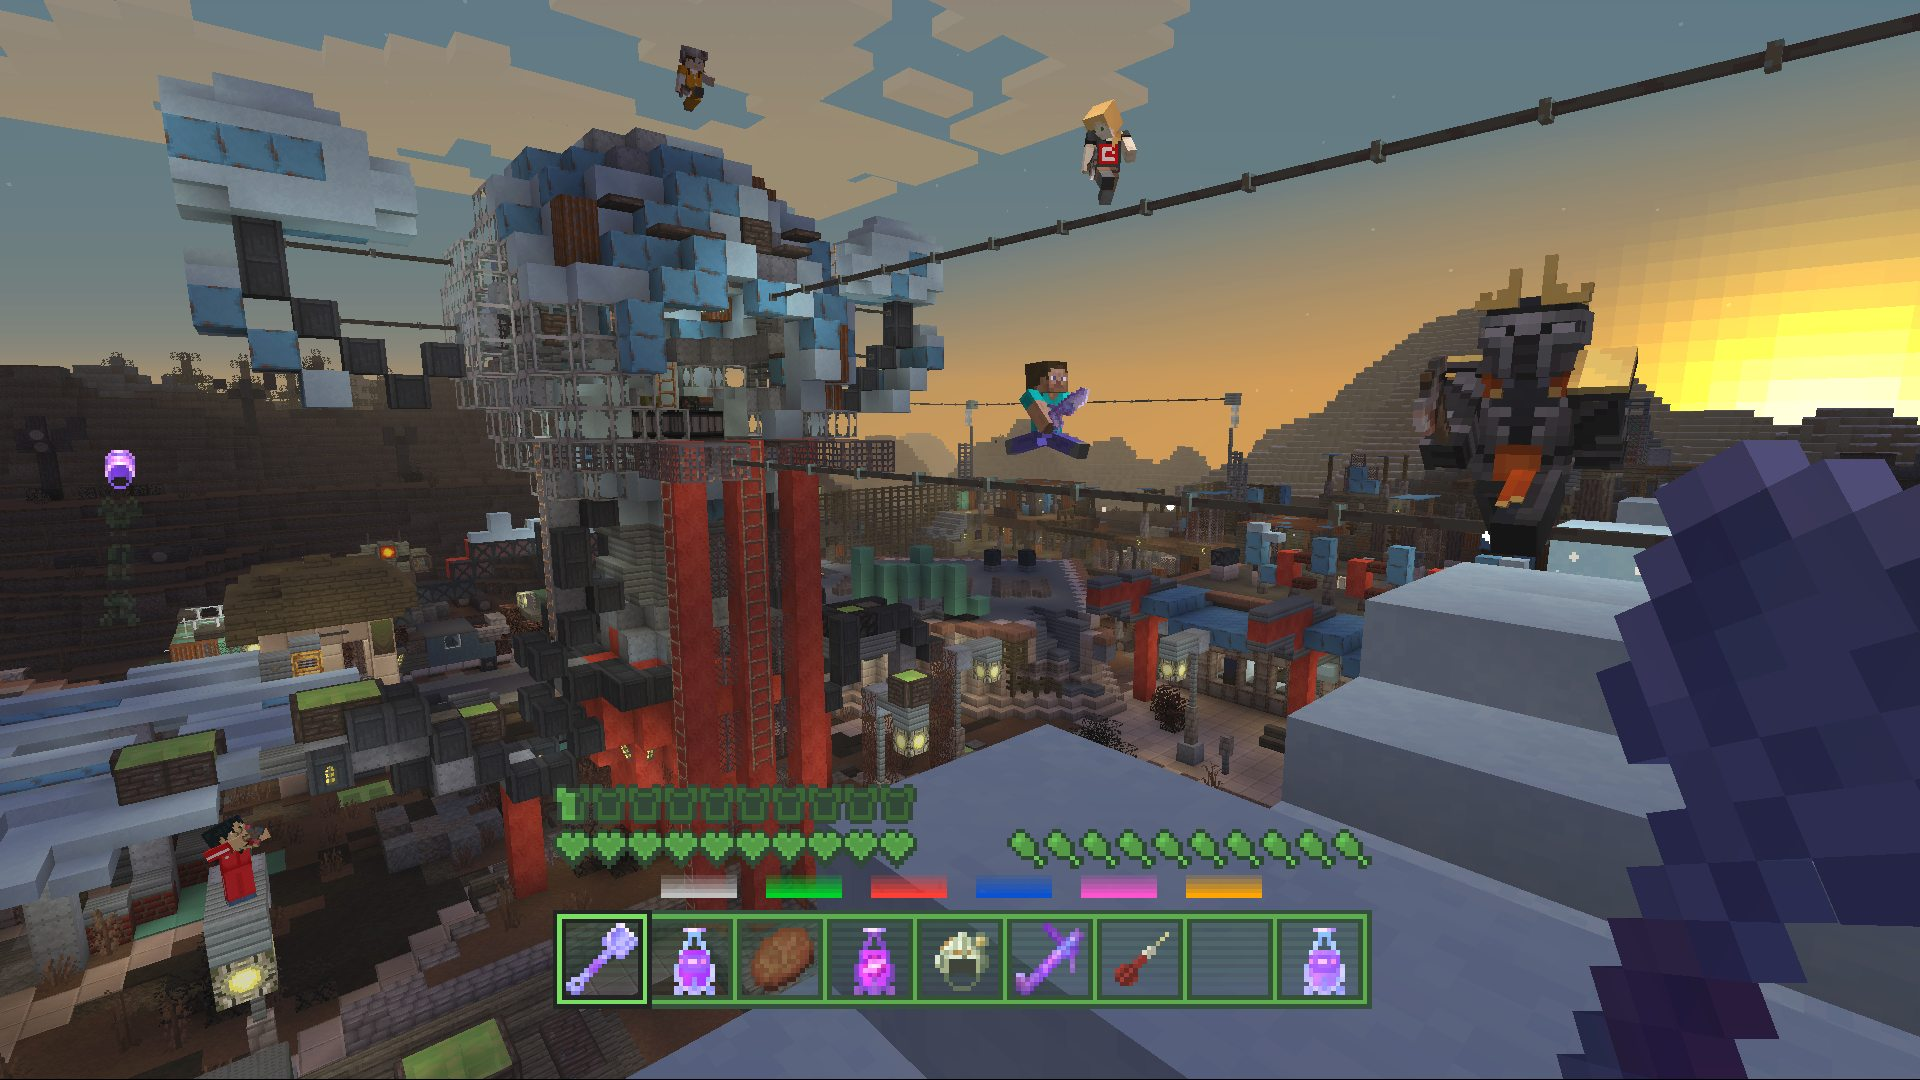 Minecraft fallout battle map pack on ps4 official playstation map released 07032017 gumiabroncs Images